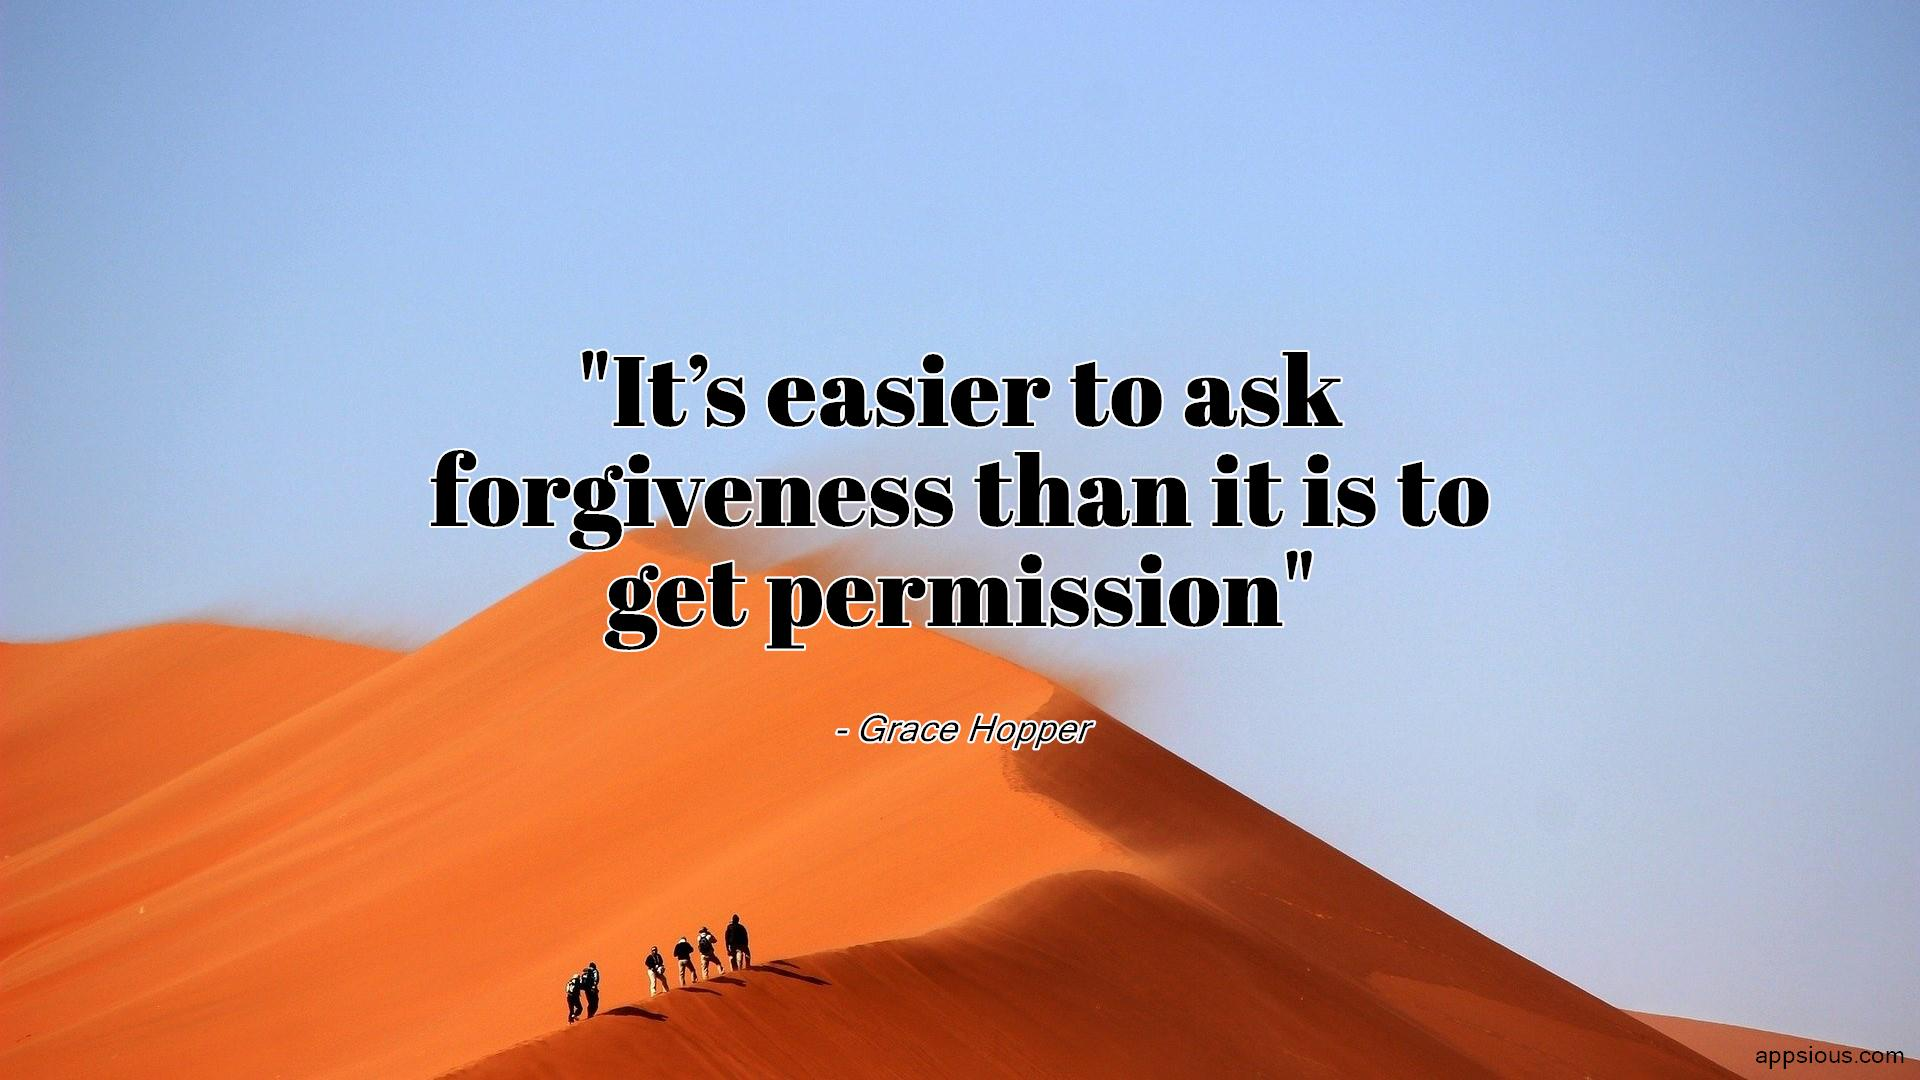 It's easier to ask forgiveness than it is to get permission